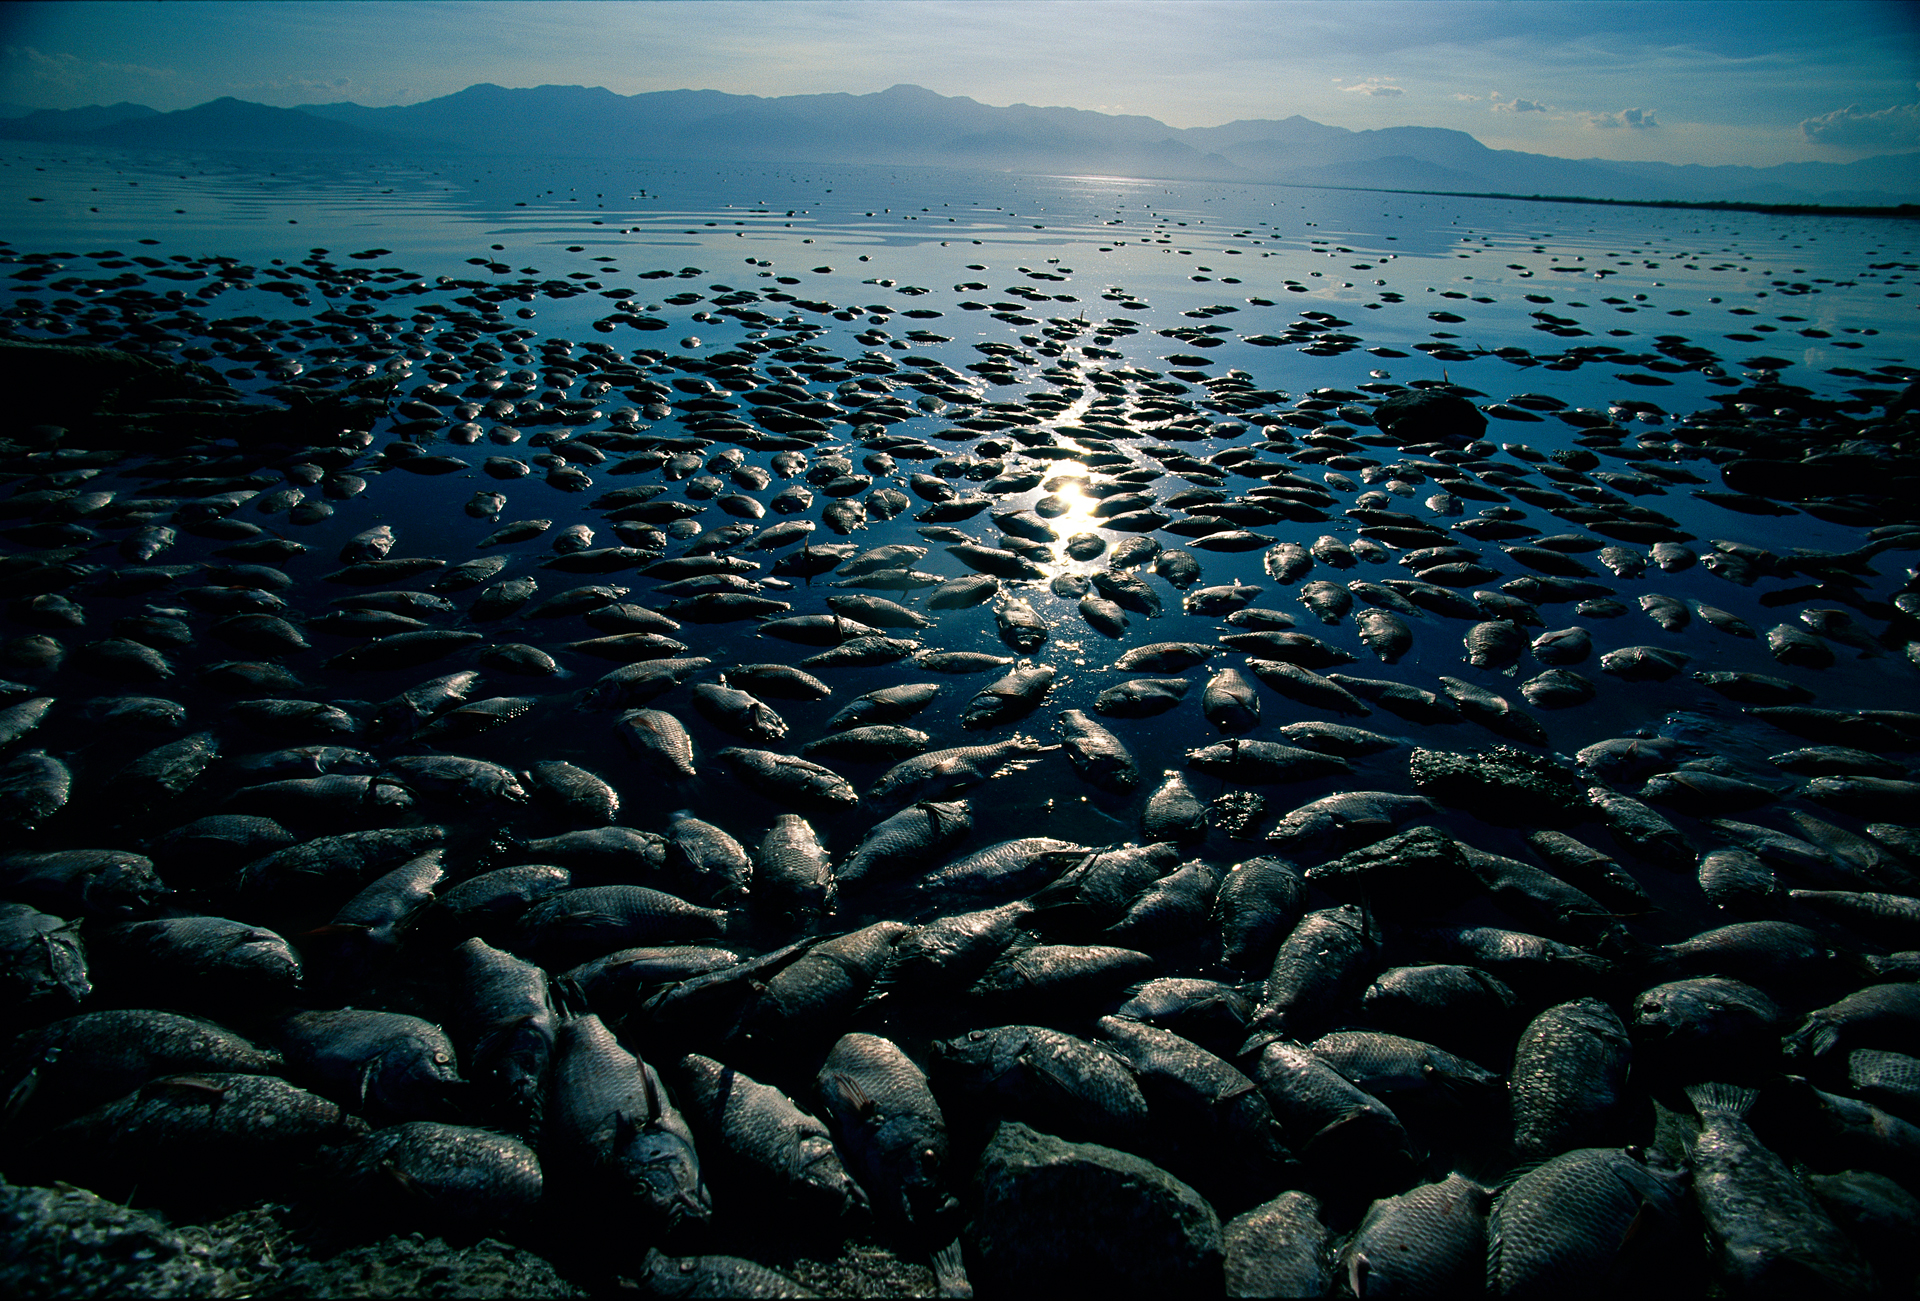 Massive fish die-offs struck the Salton Sea in the late 1990's, with an estimate of nearly 8 million tilapia dying on a single hot day in August 1999.  Northshore